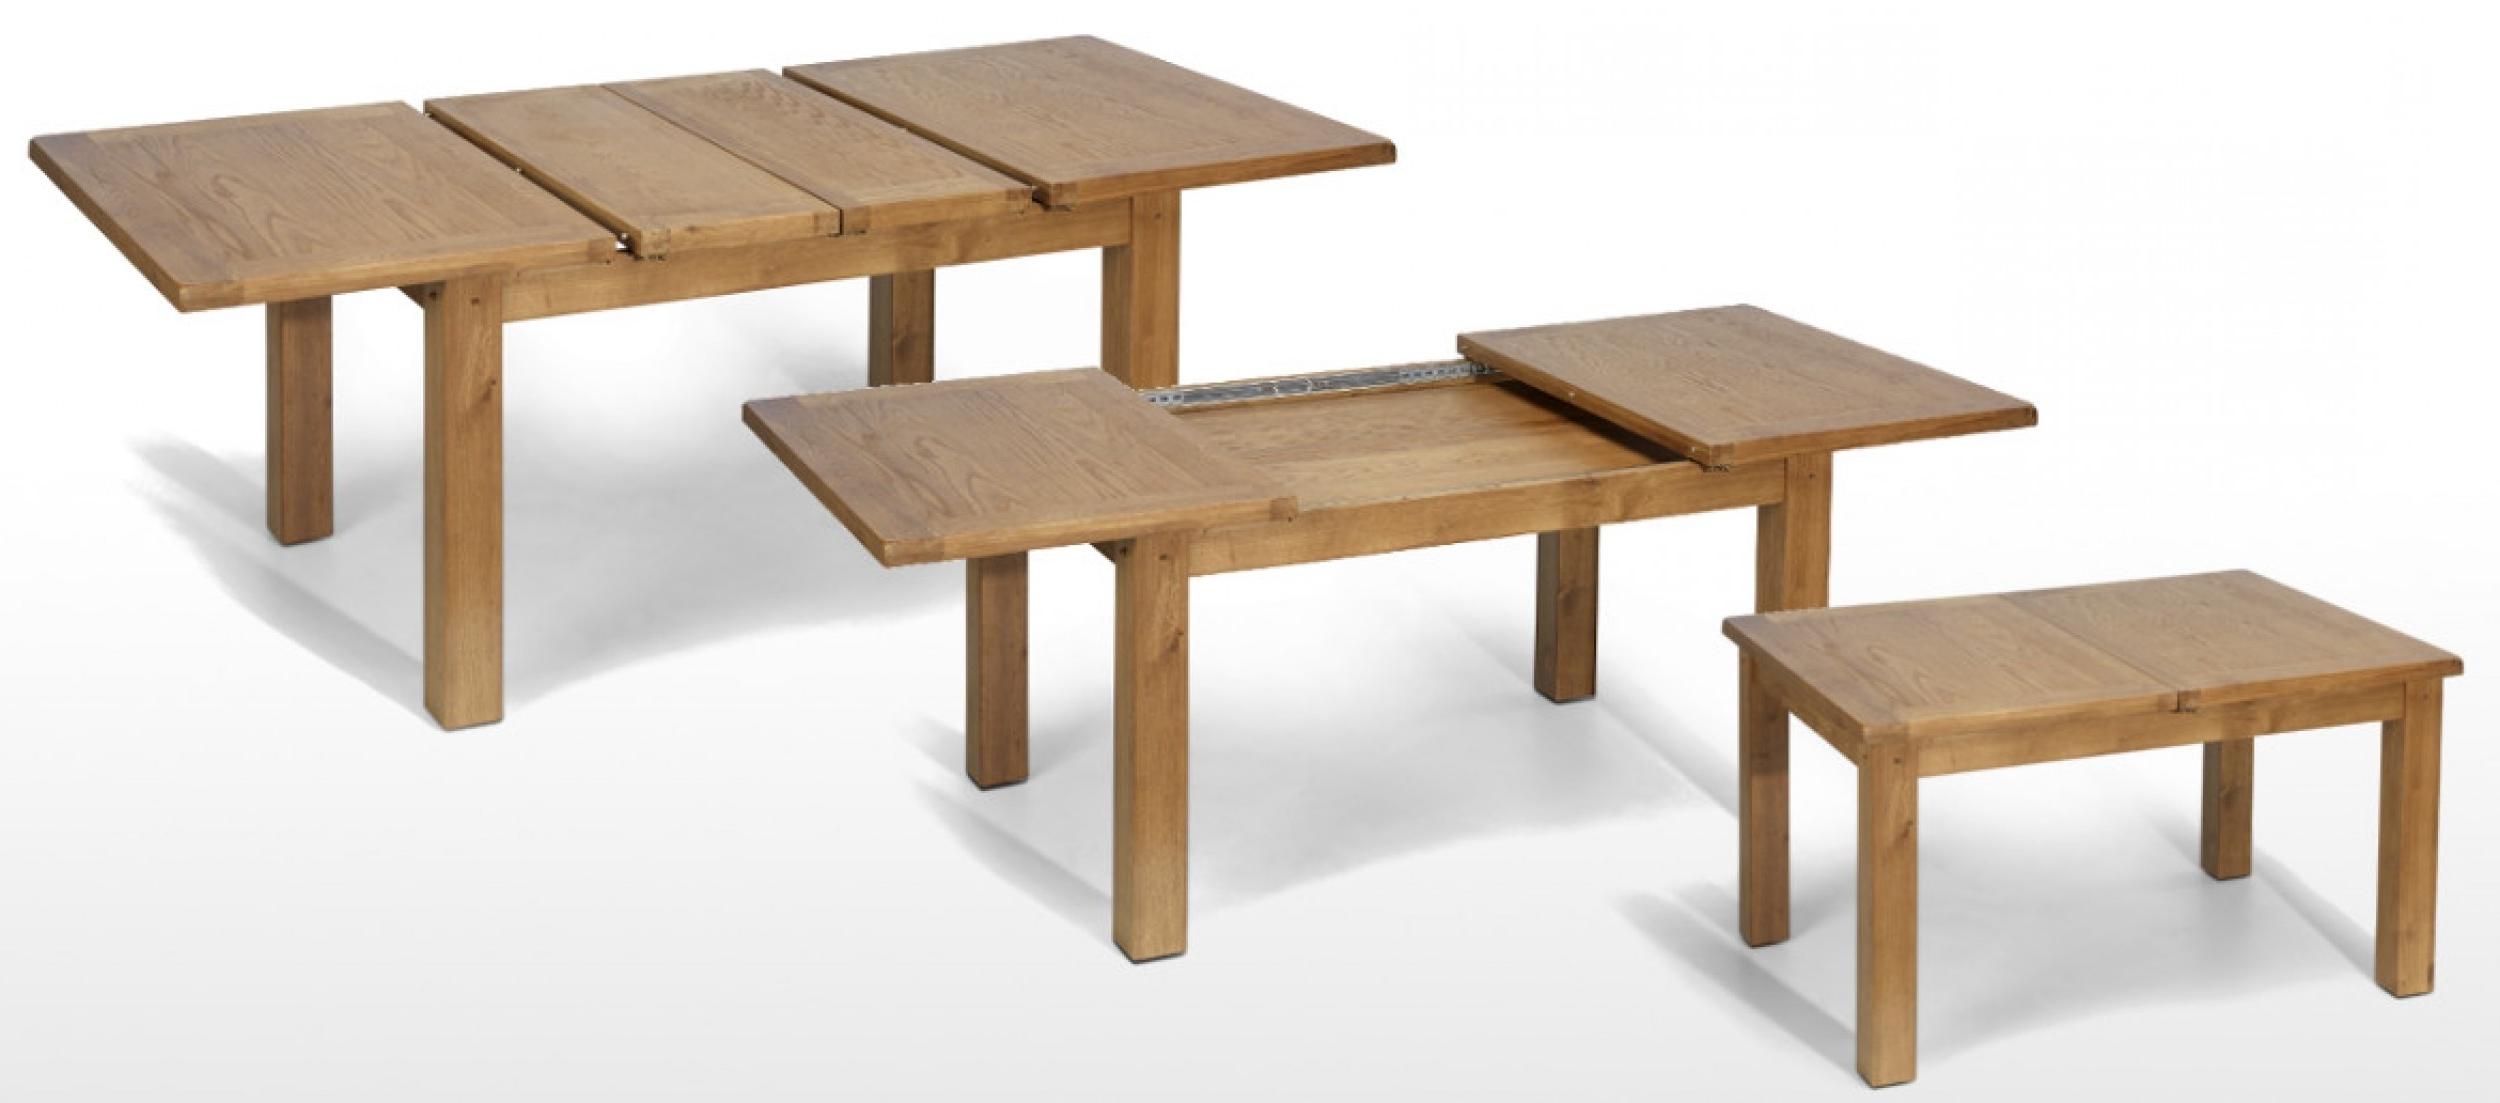 Quercus With Regard To Most Current Dining Extending Tables And Chairs (Gallery 10 of 25)